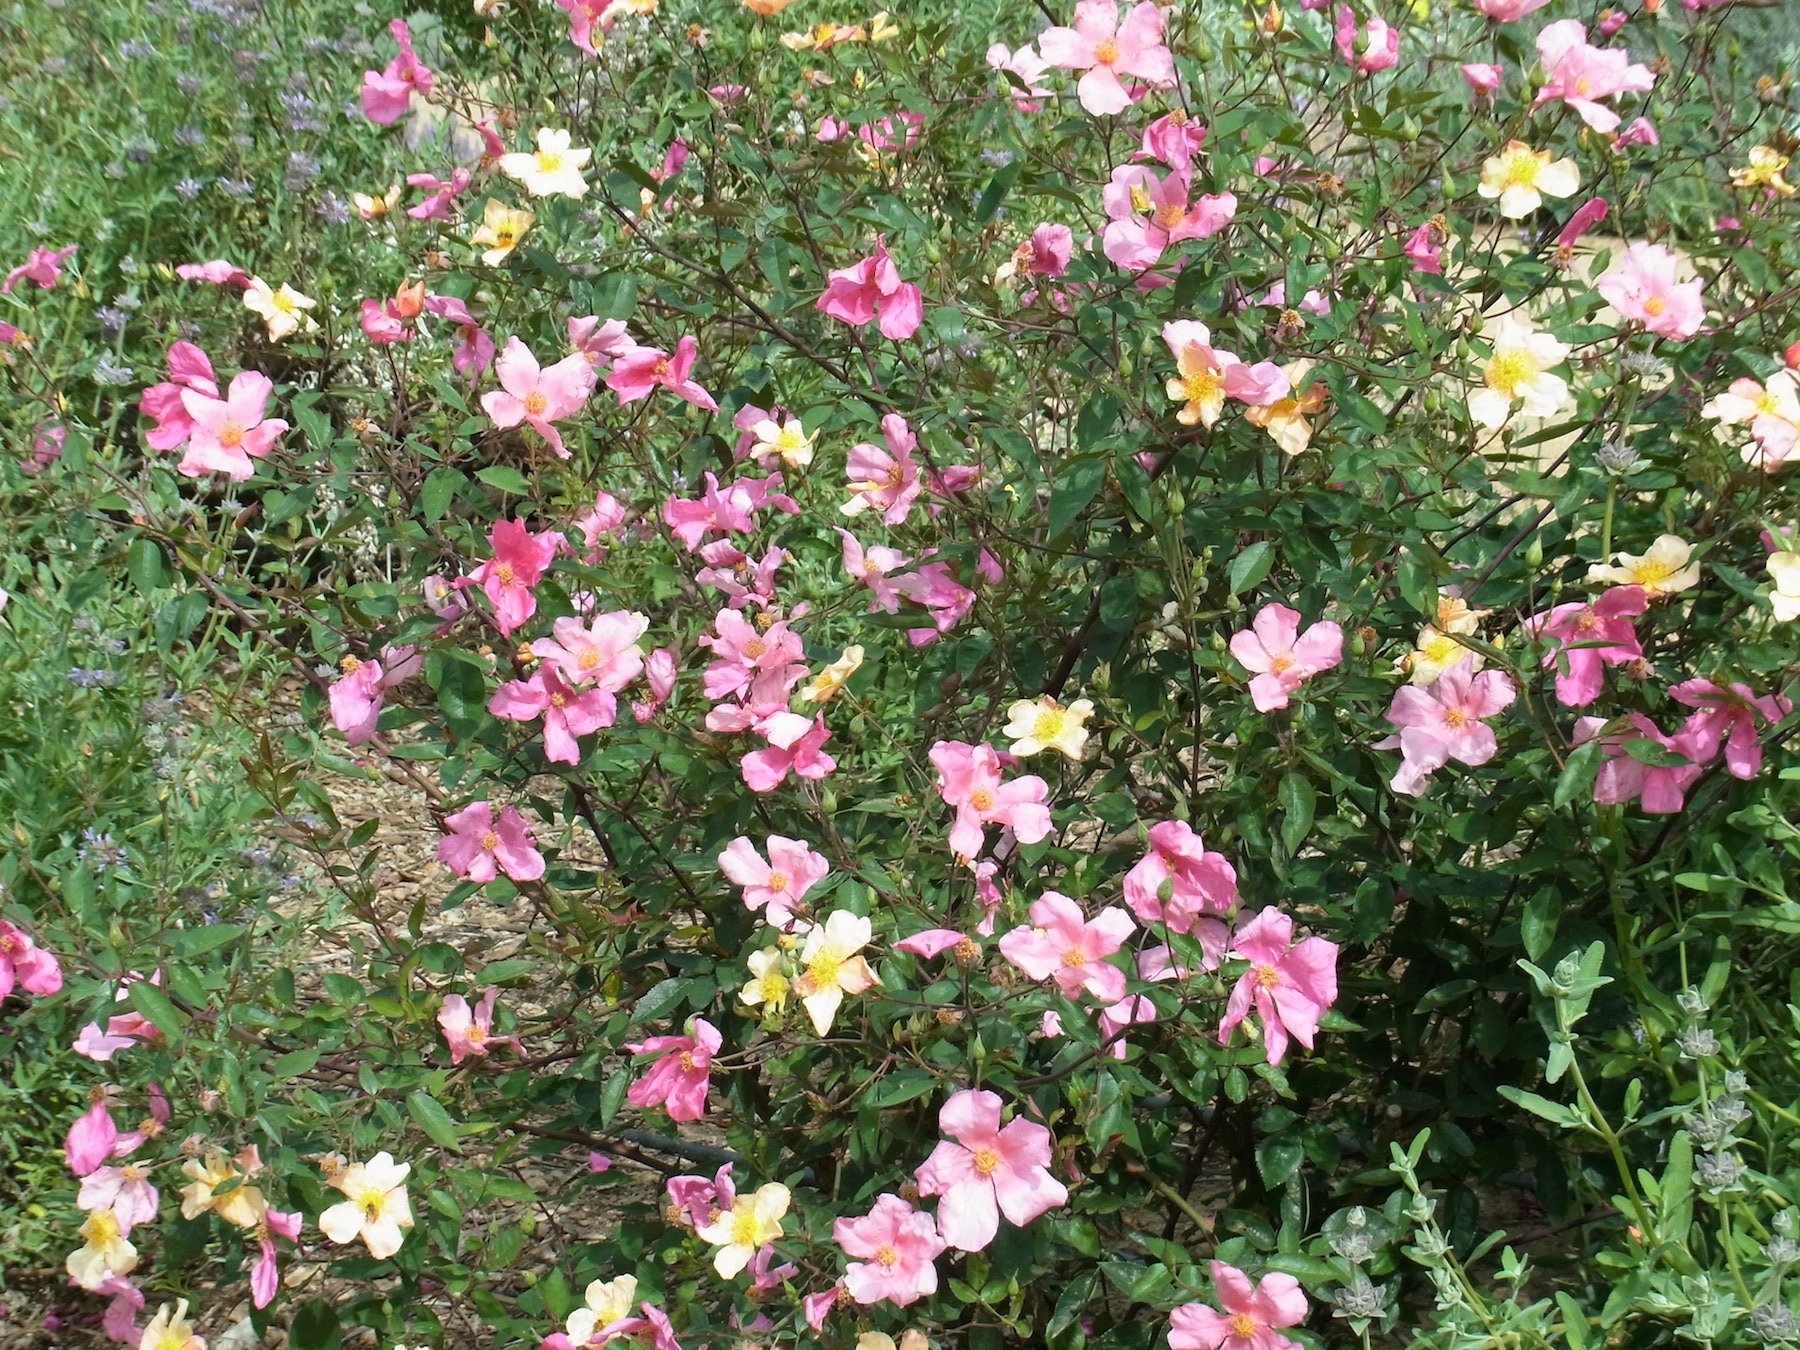 Roses may bee garden plant of the month the bee gardener anr blogs butterfly rose rosa x odorata mutabilis has a mix of yellow pink and deep pink flowers mightylinksfo Gallery